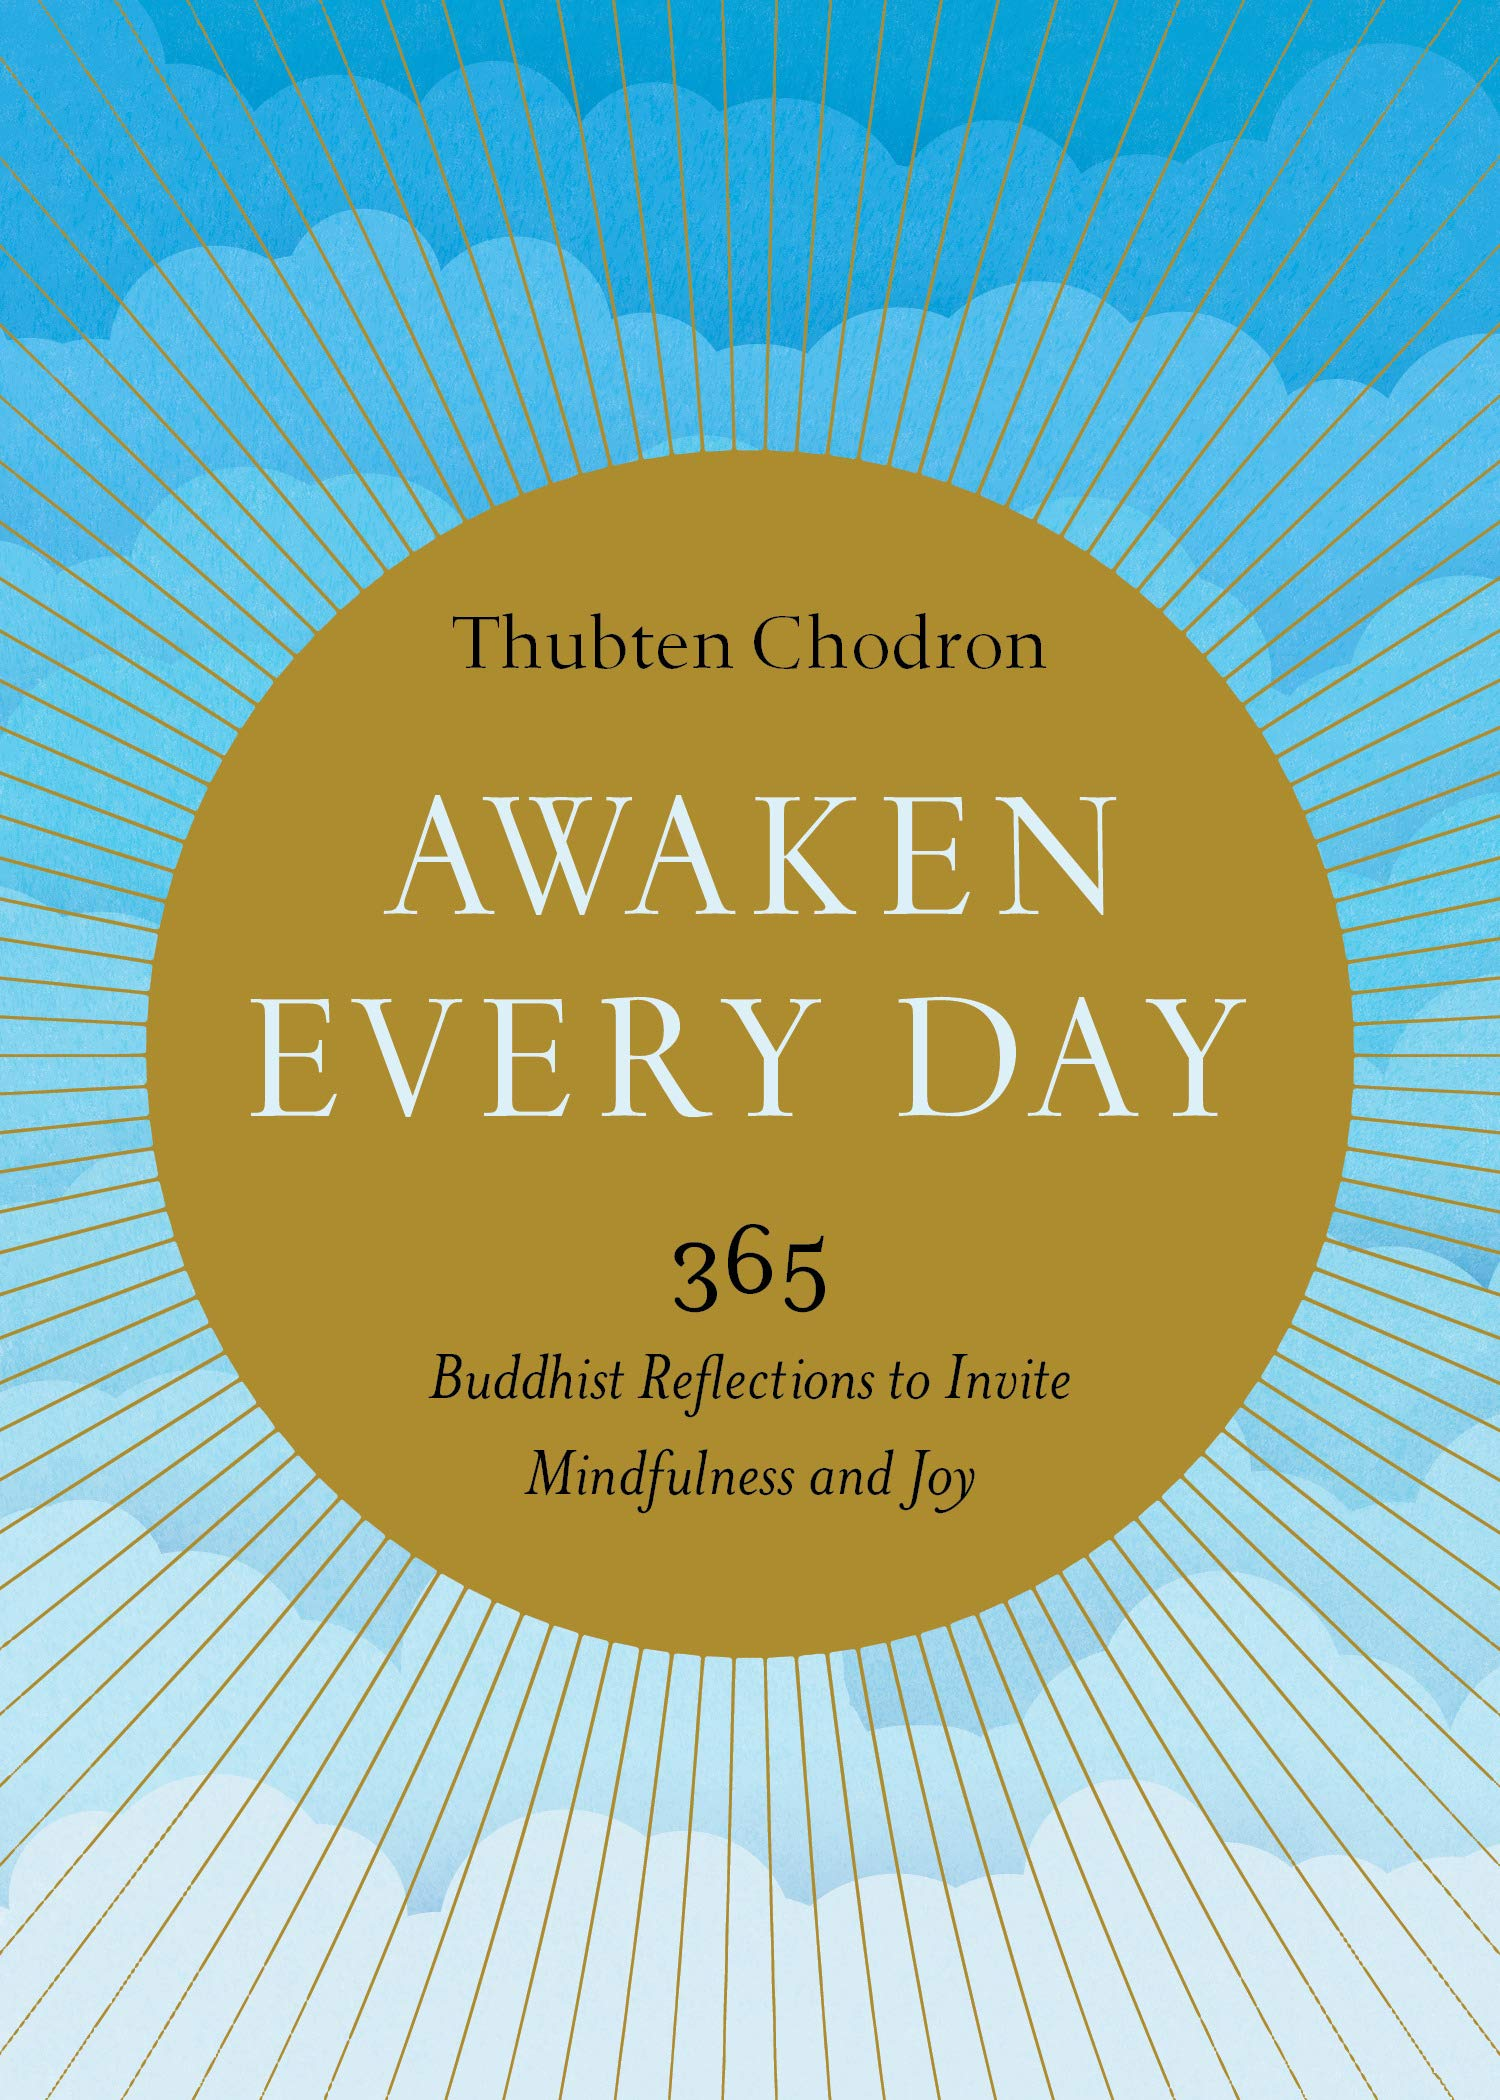 Chodron Awaken cover art